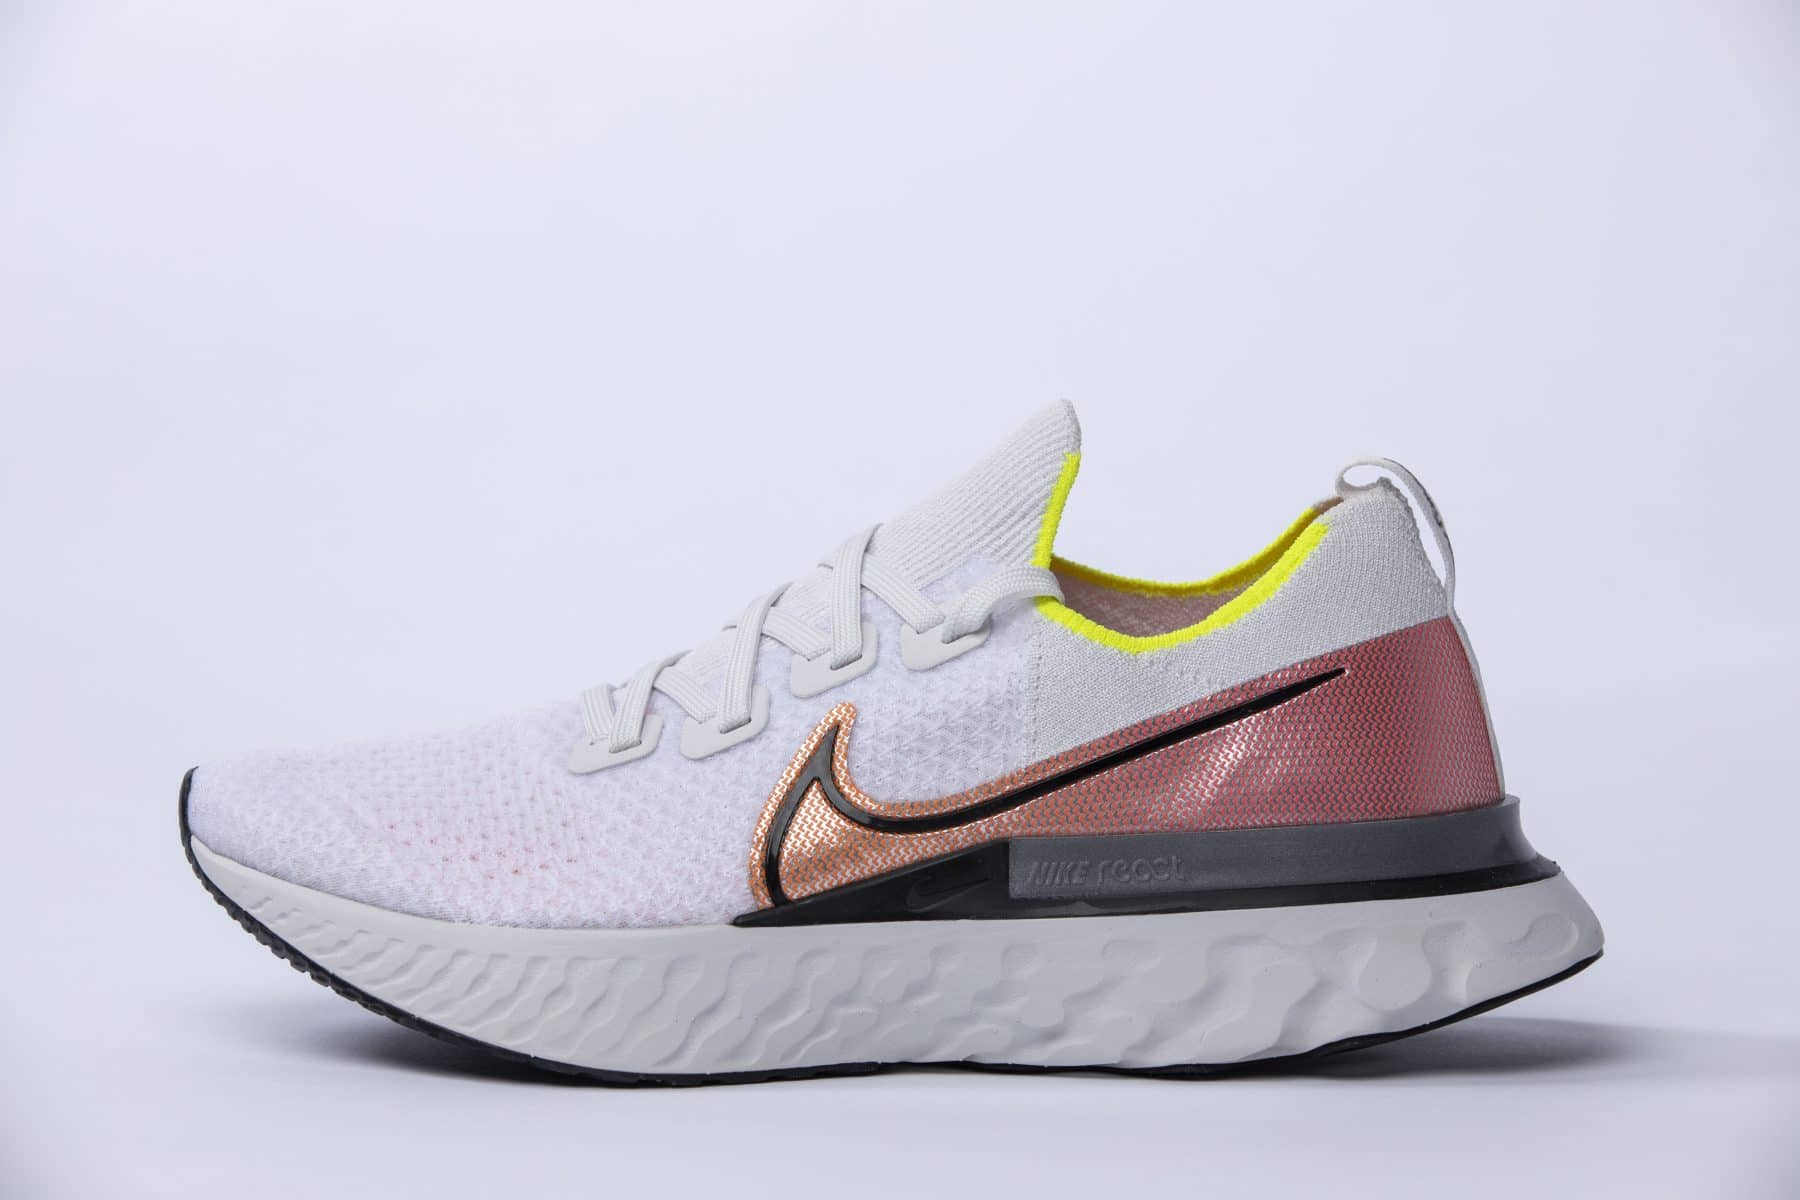 Nike React Infinity Run First Impression